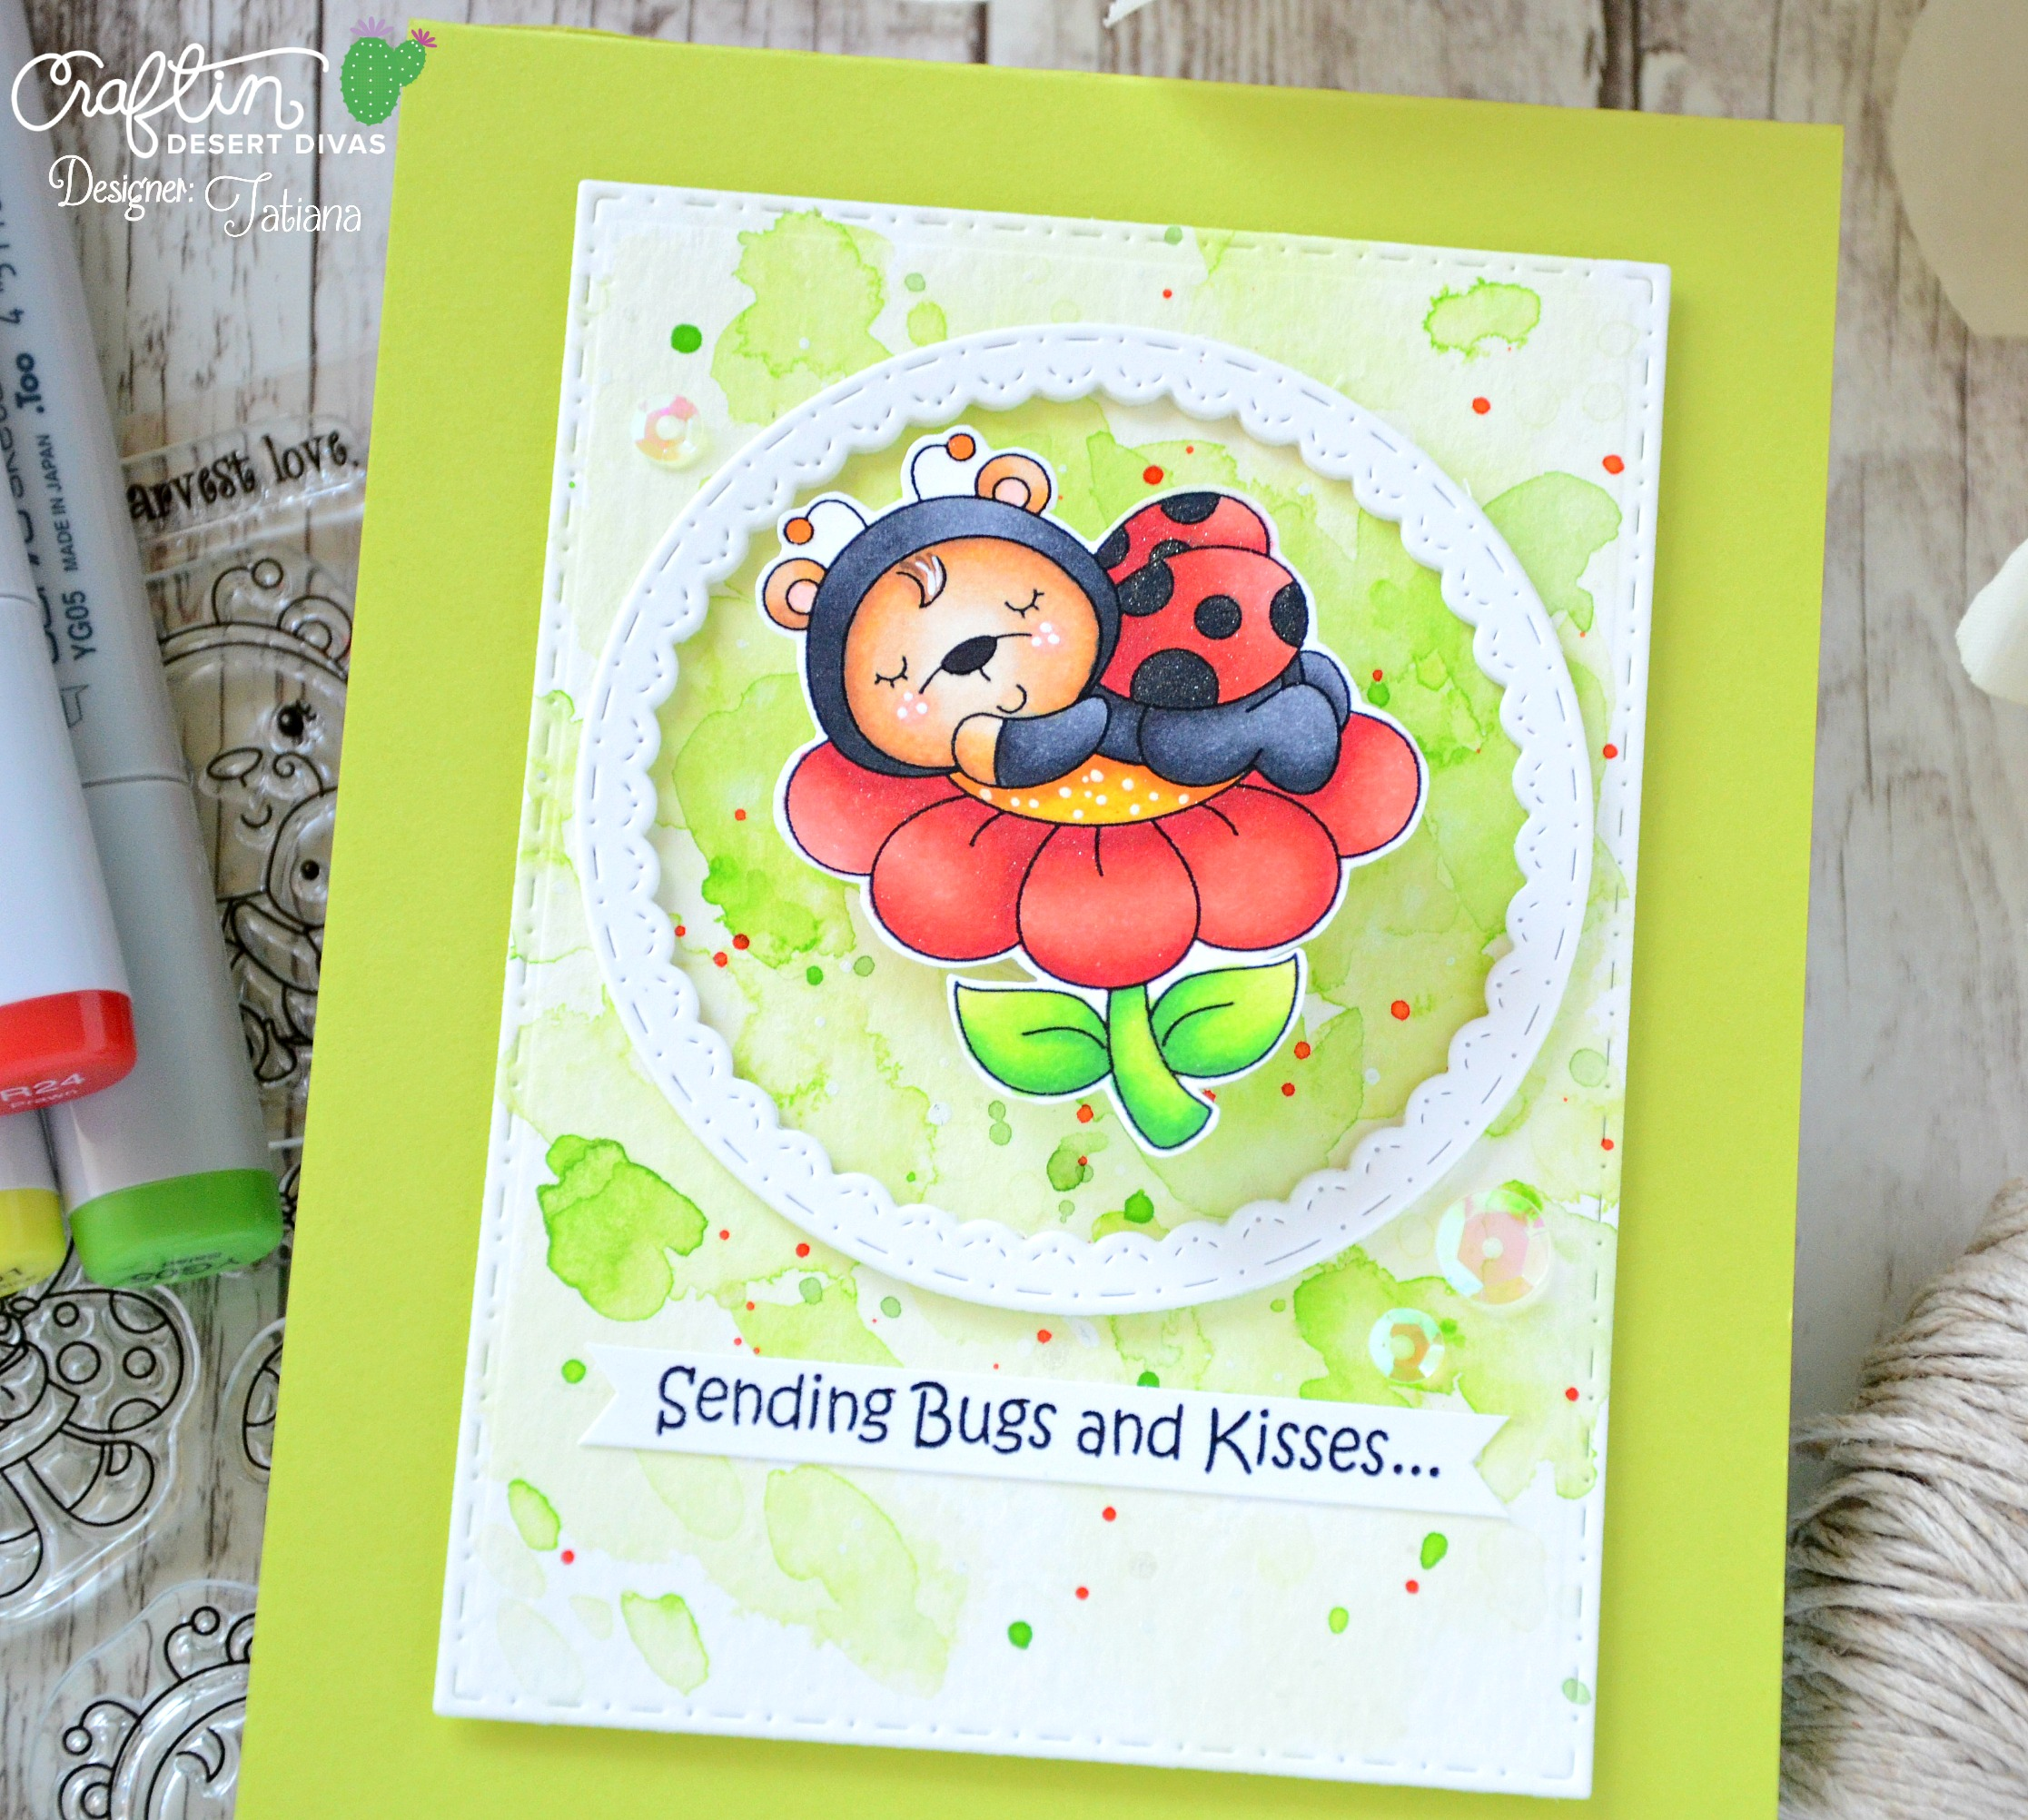 Ladybug Garden - Home Design Ideas and Pictures